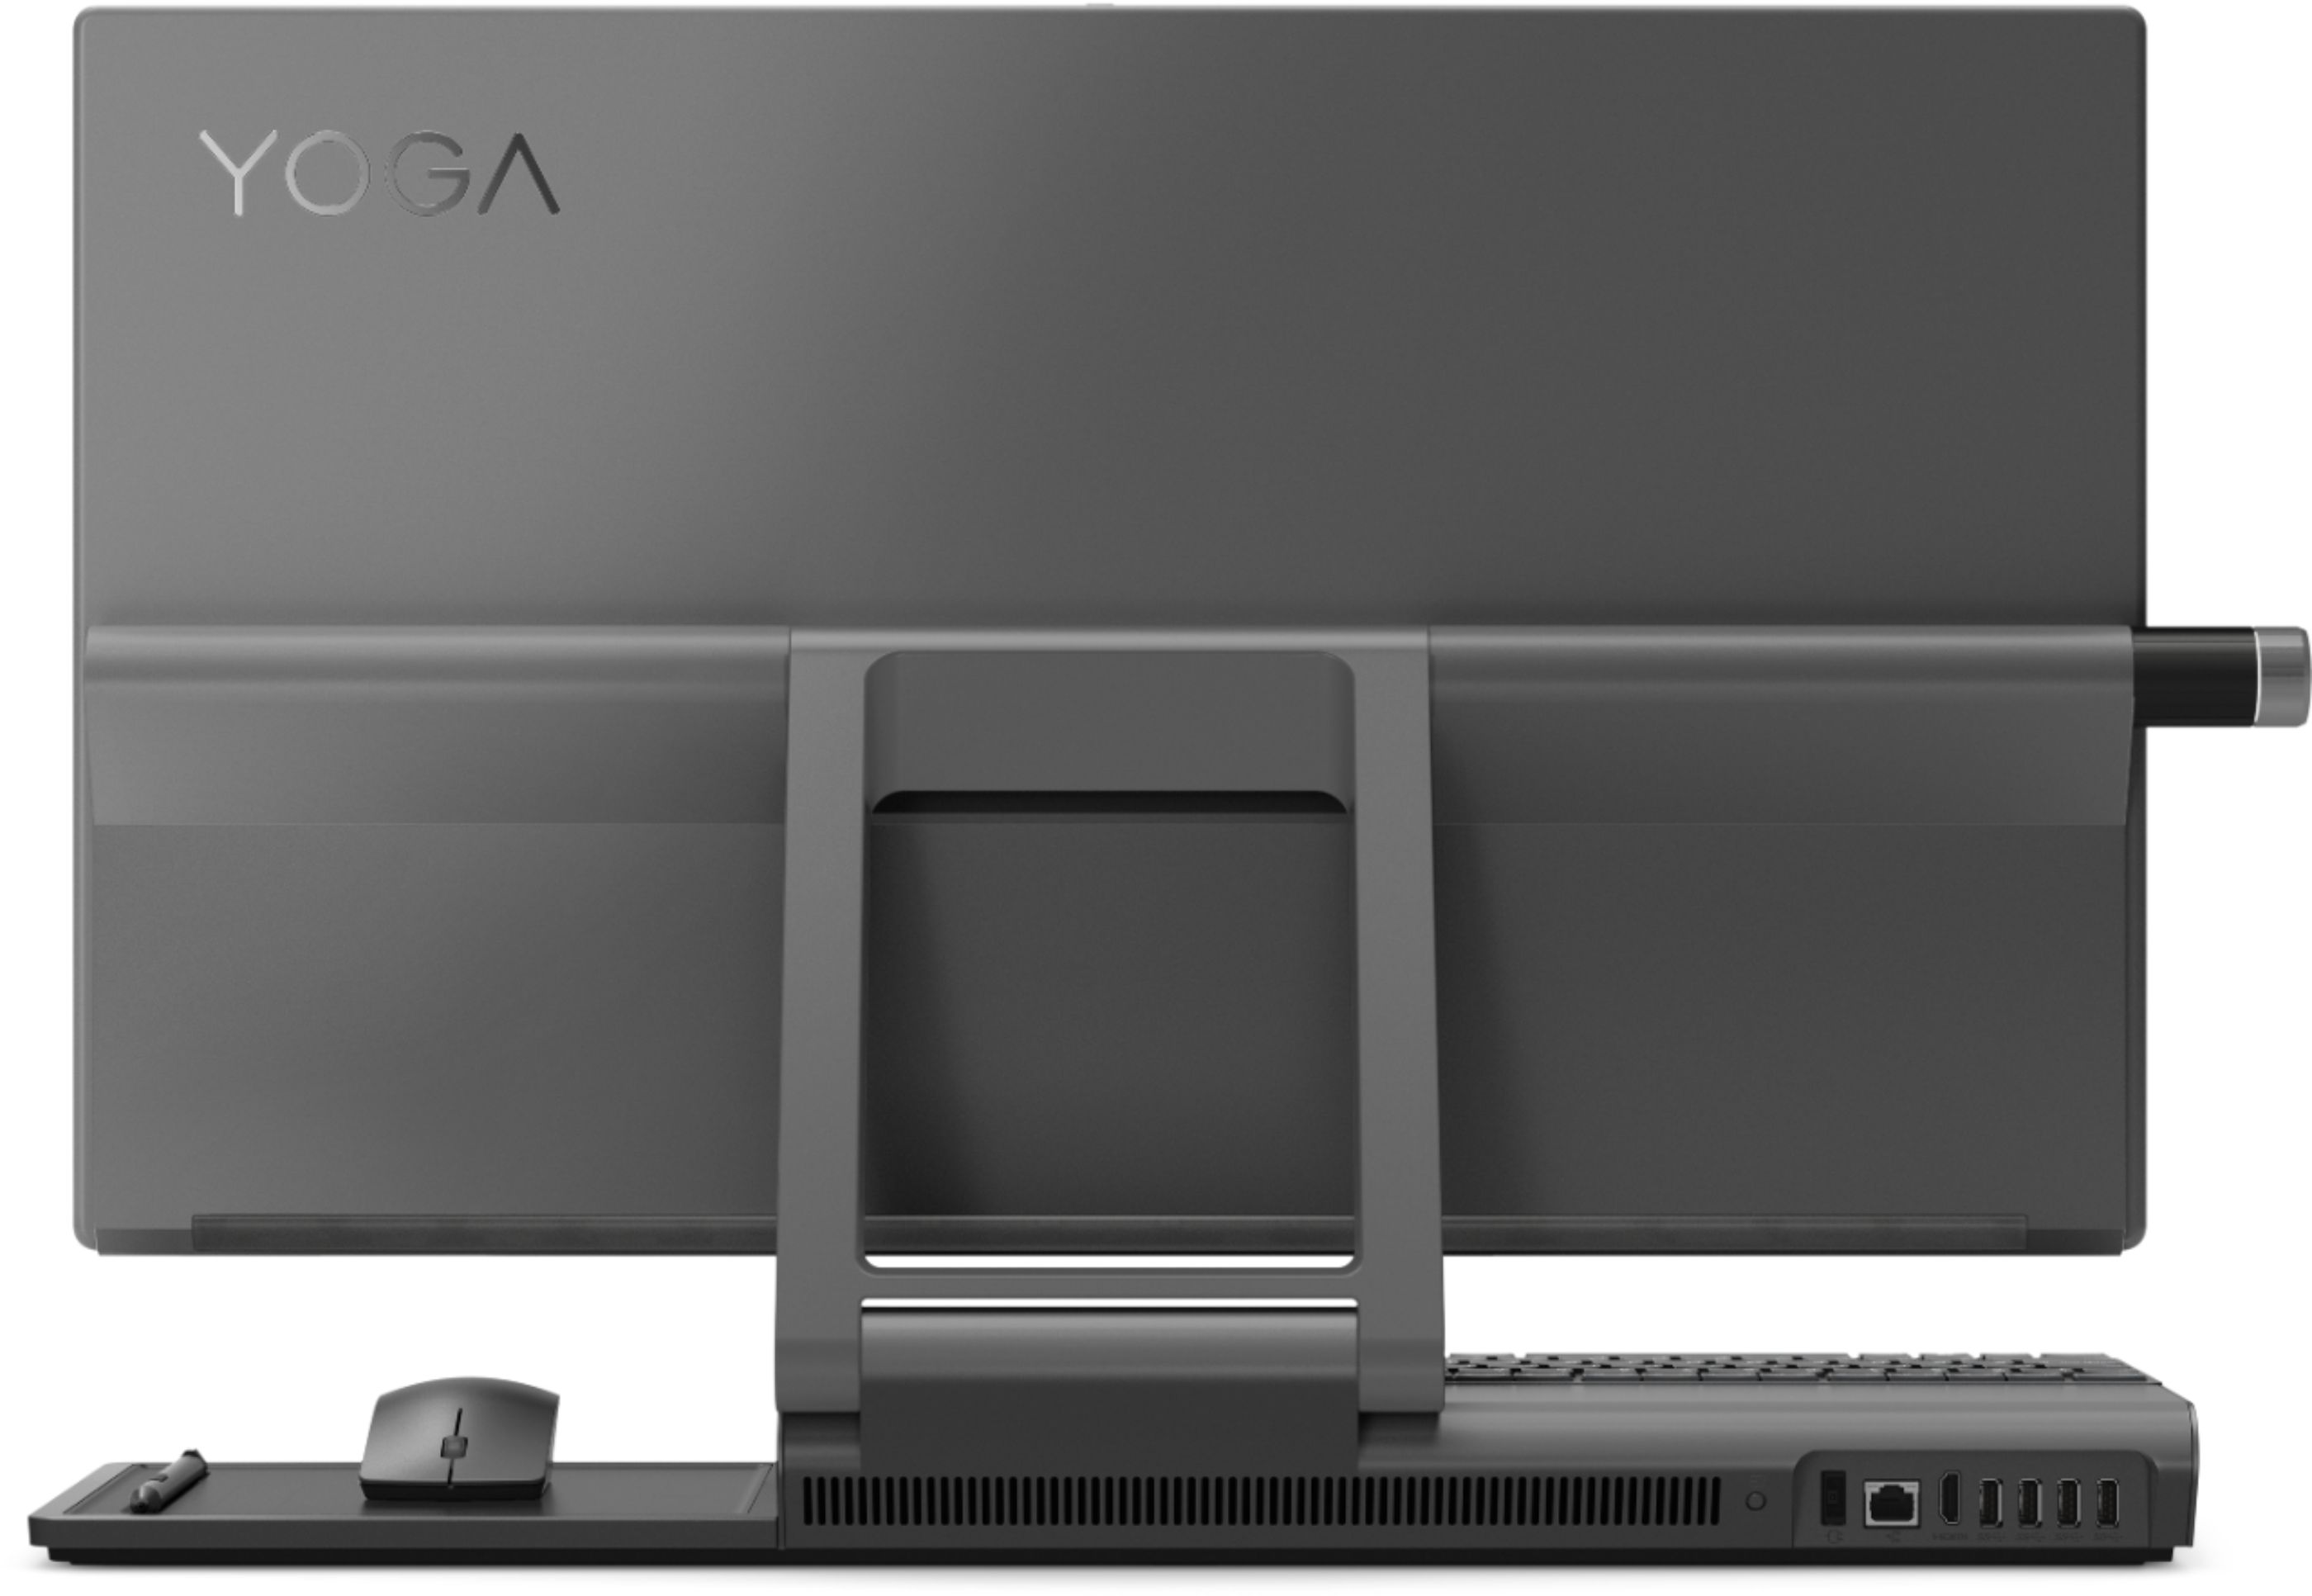 """Back Zoom. Lenovo - Yoga A940-27ICB 27"""" Touch-Screen All-In-One - Intel Core i7 - 16GB Memory - 1TB Hard Drive + 256GB Solid State Drive - Gray."""